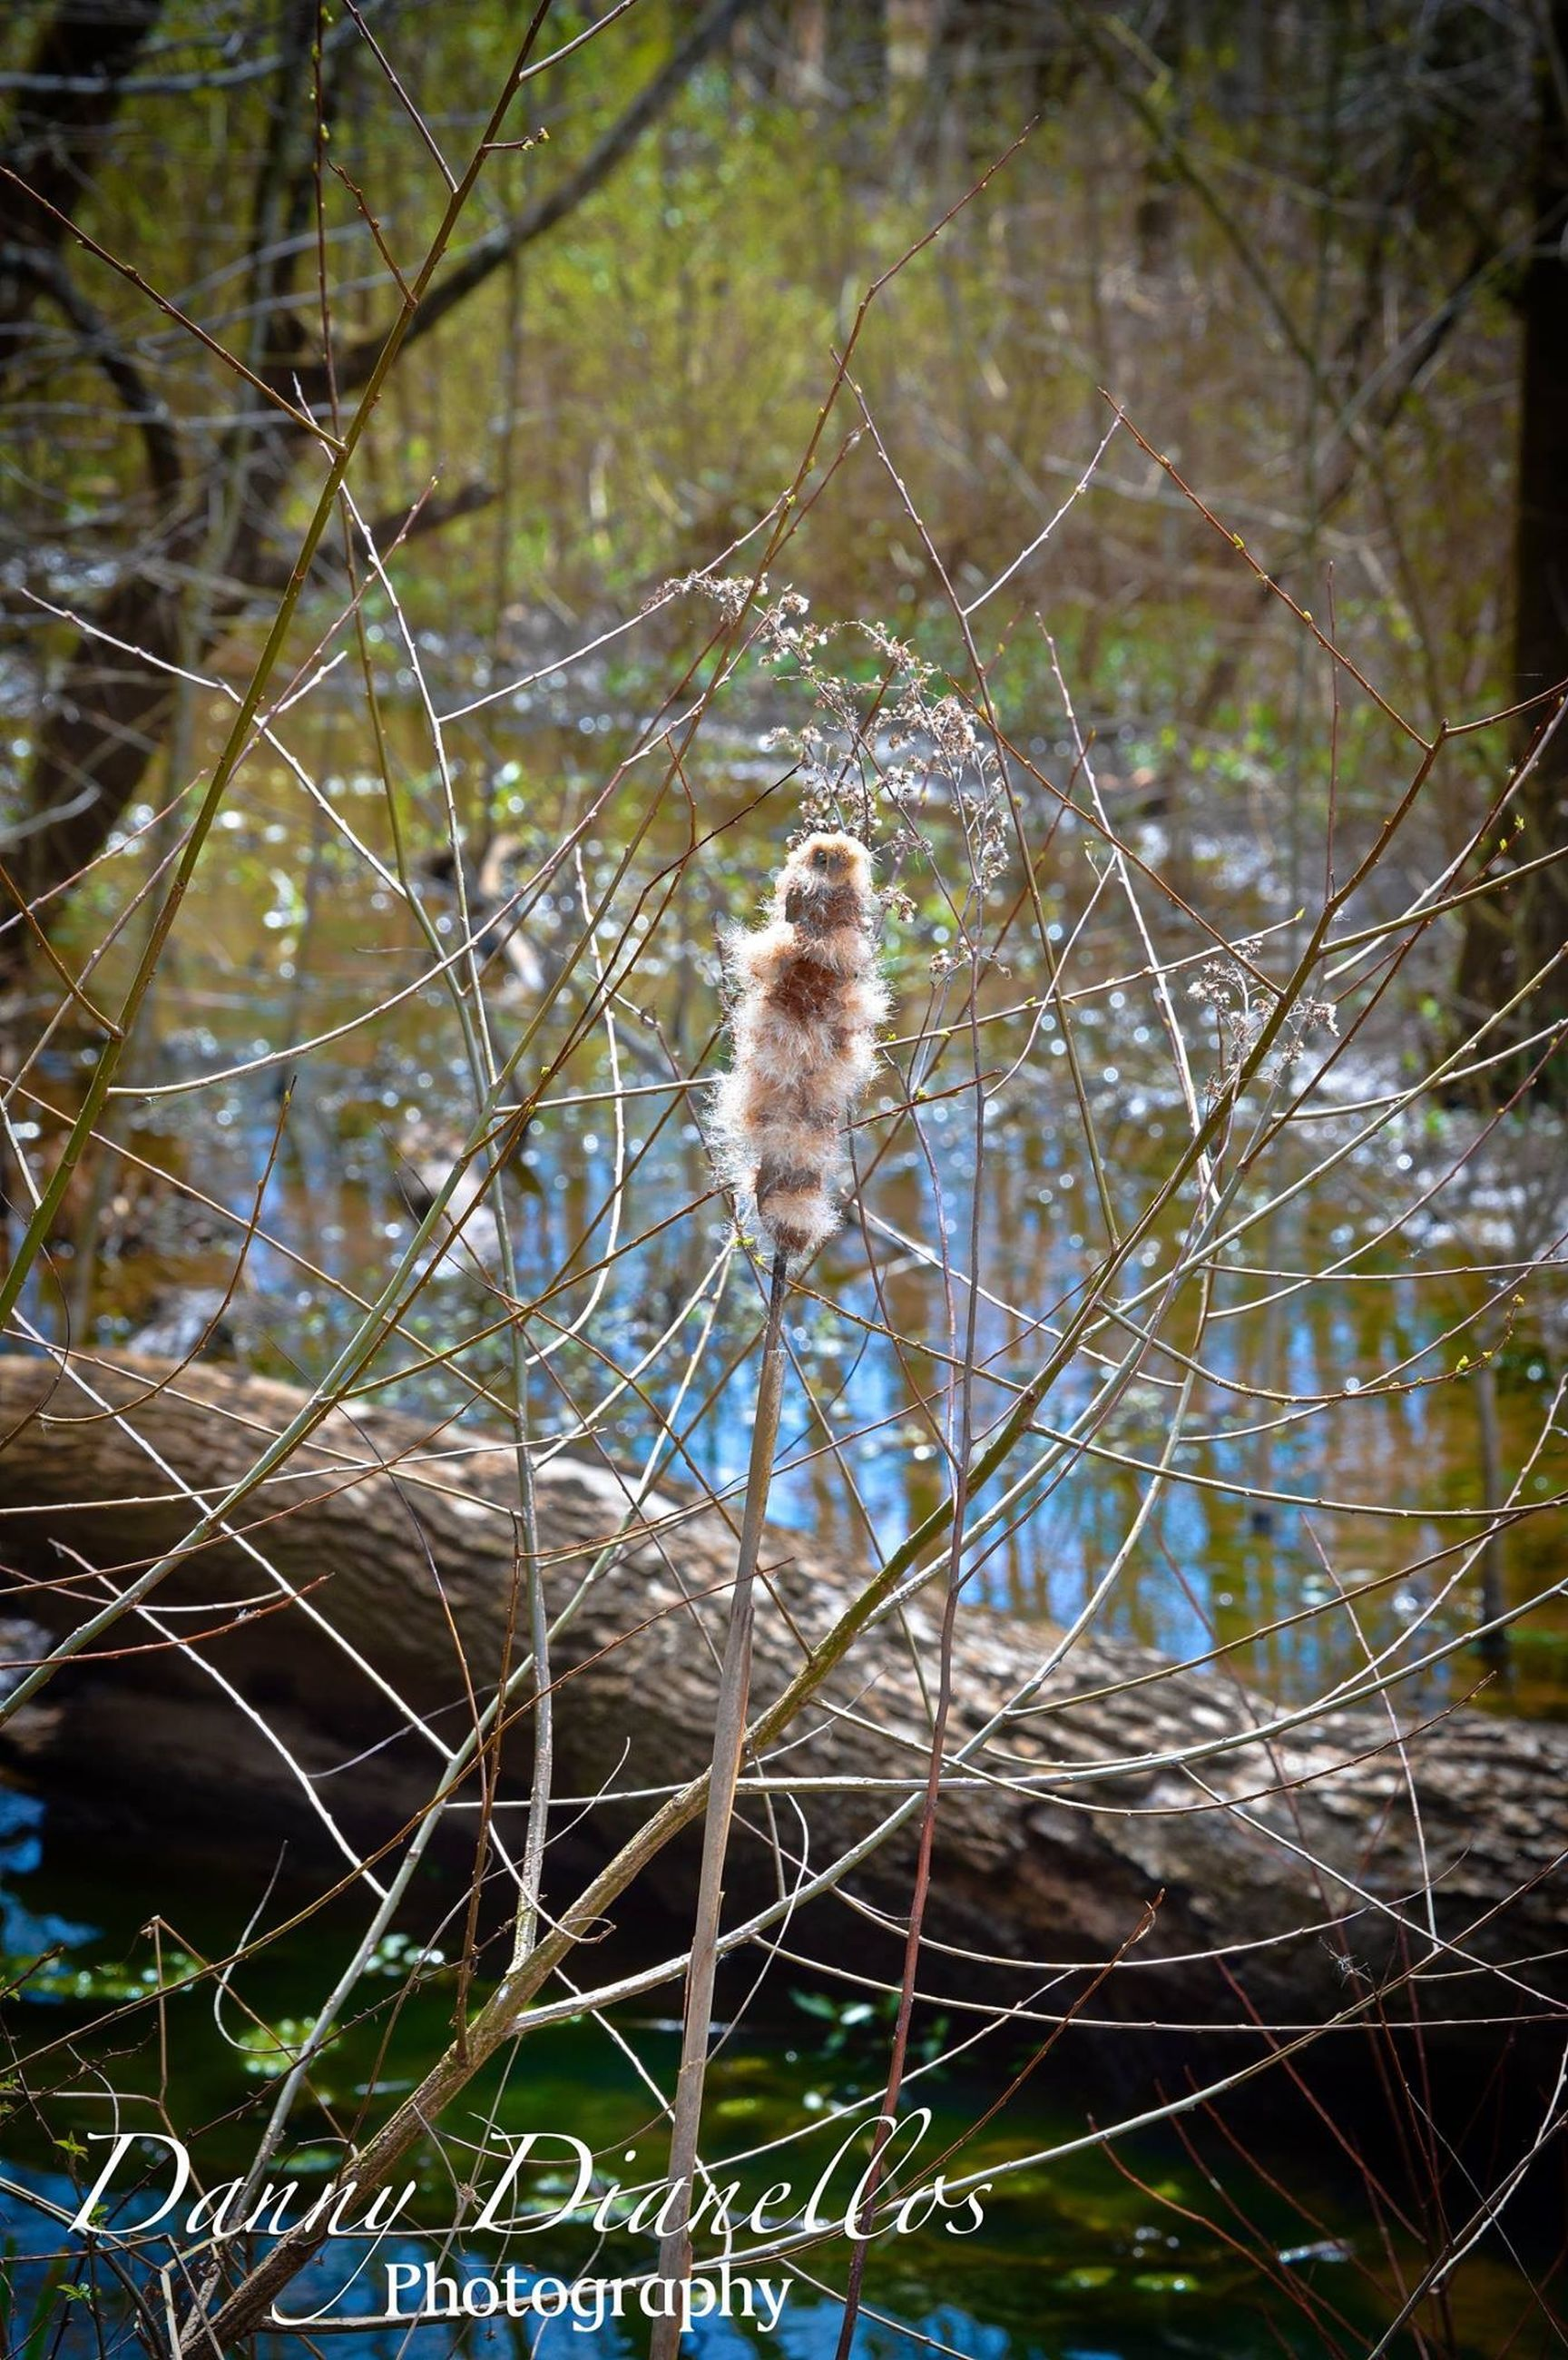 water, animal themes, one animal, animals in the wild, wildlife, lake, focus on foreground, nature, close-up, reflection, spider web, day, branch, outdoors, beauty in nature, drop, plant, forest, no people, grass